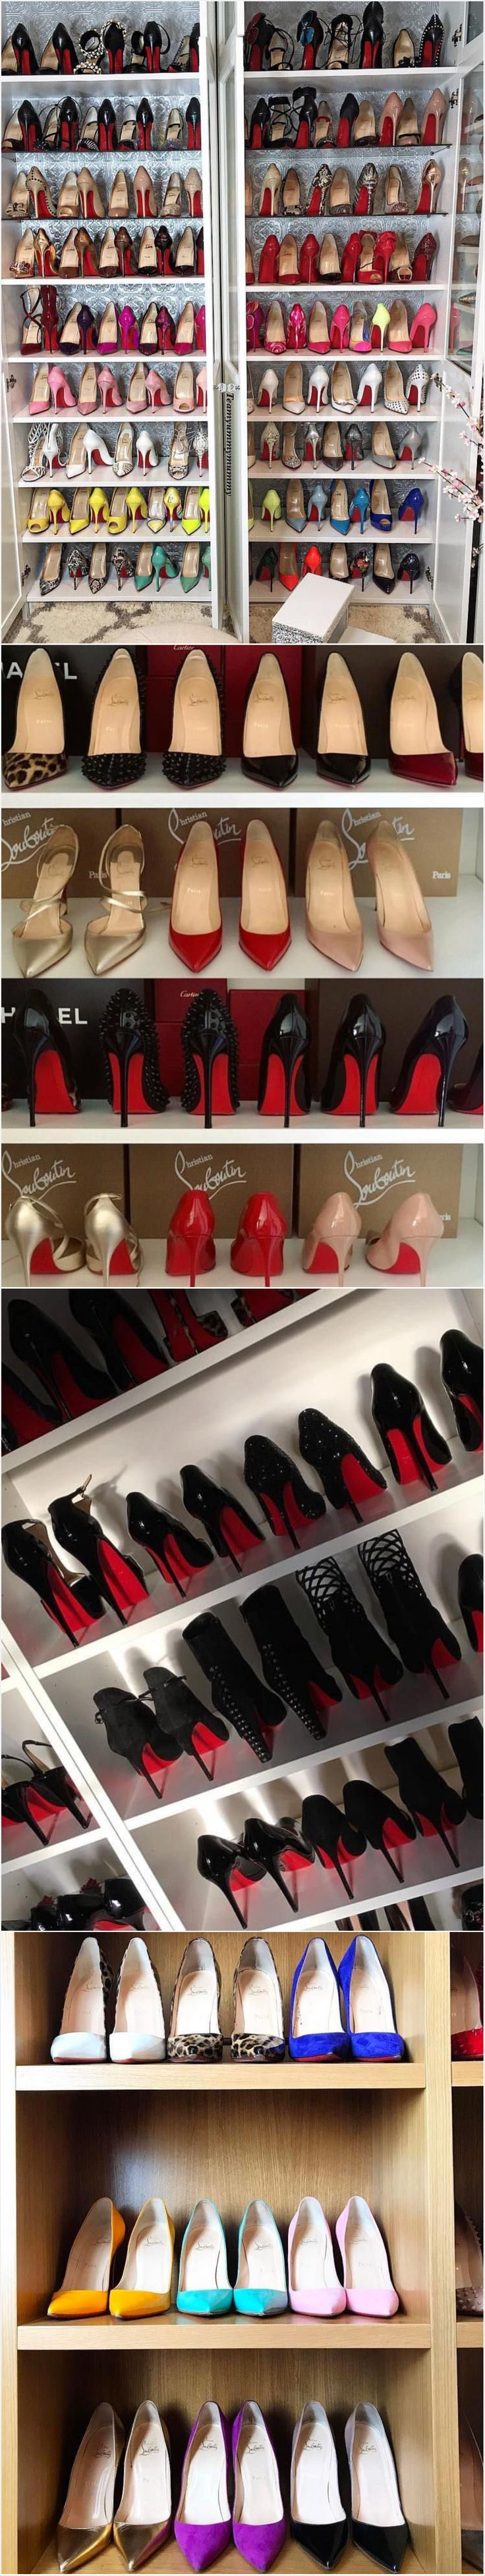 Someone seems to have a real Louboutins addiction. And it's not me.! Christian Louboutin #redsoles